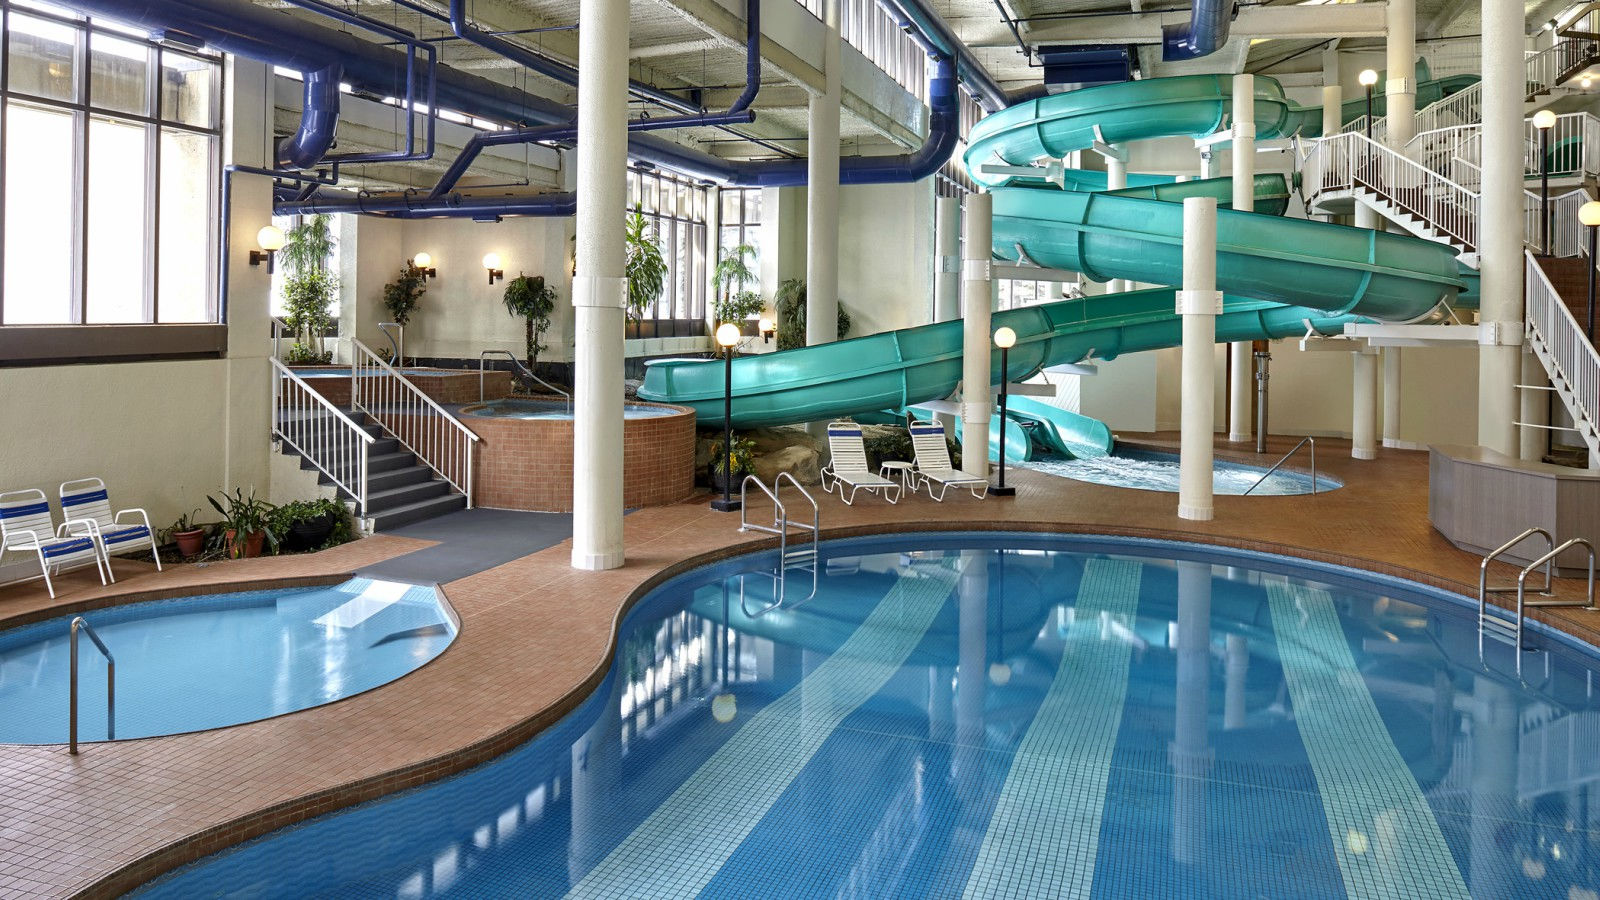 Calgary Shopping Package - Oasis River Country Water Park